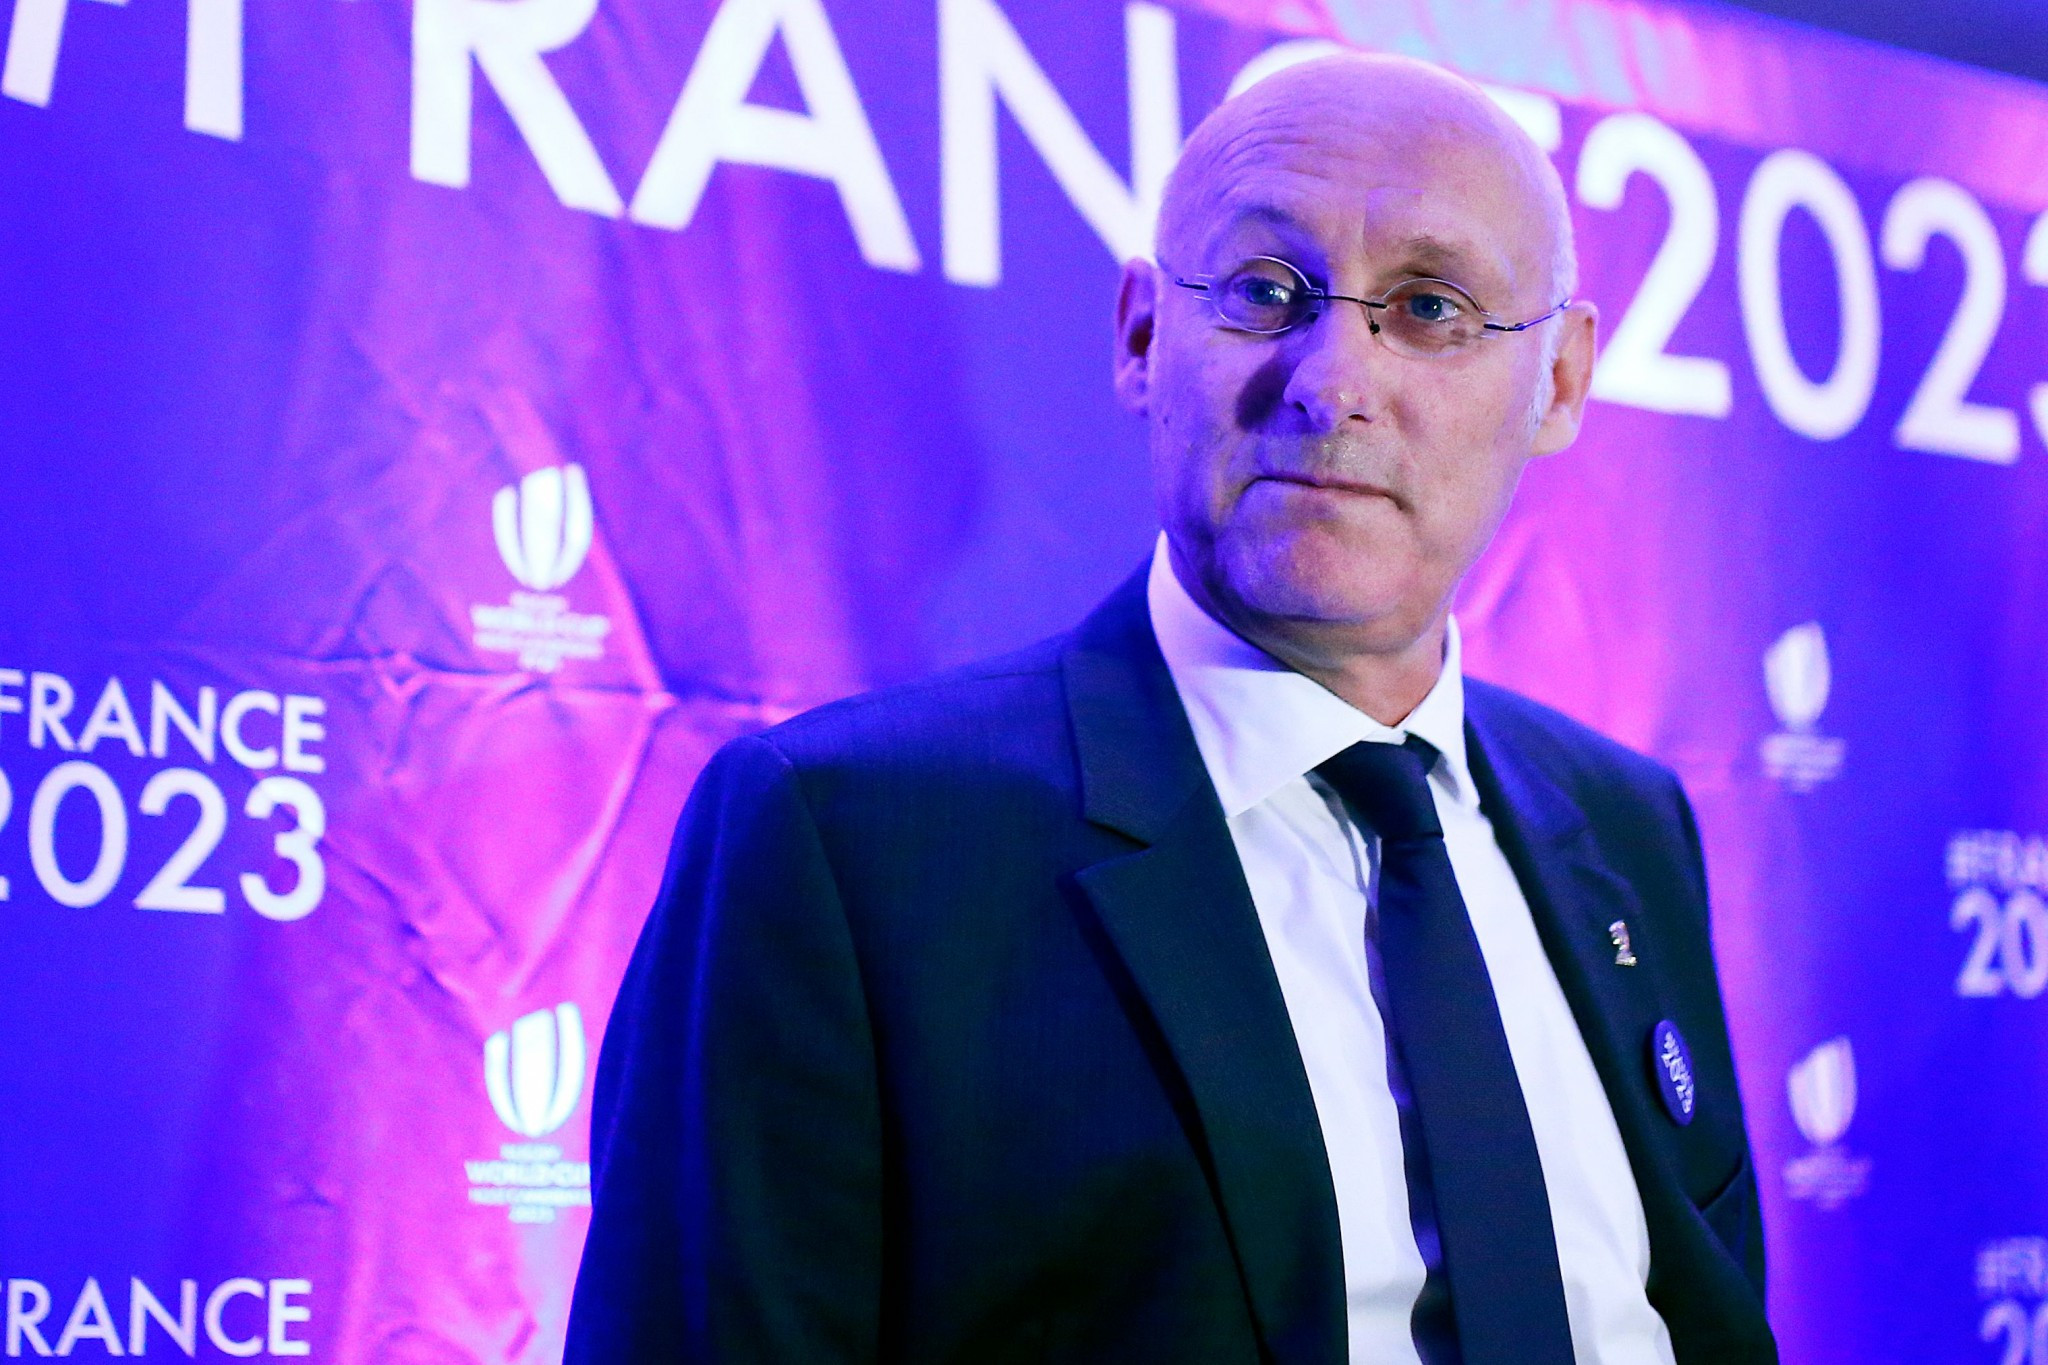 Bernard Laporte, President of the French rugby union, has run into domestic trouble ahead of this momth's crucial presentation in the bid for the 2023 Rugby World Cup ©Getty Images